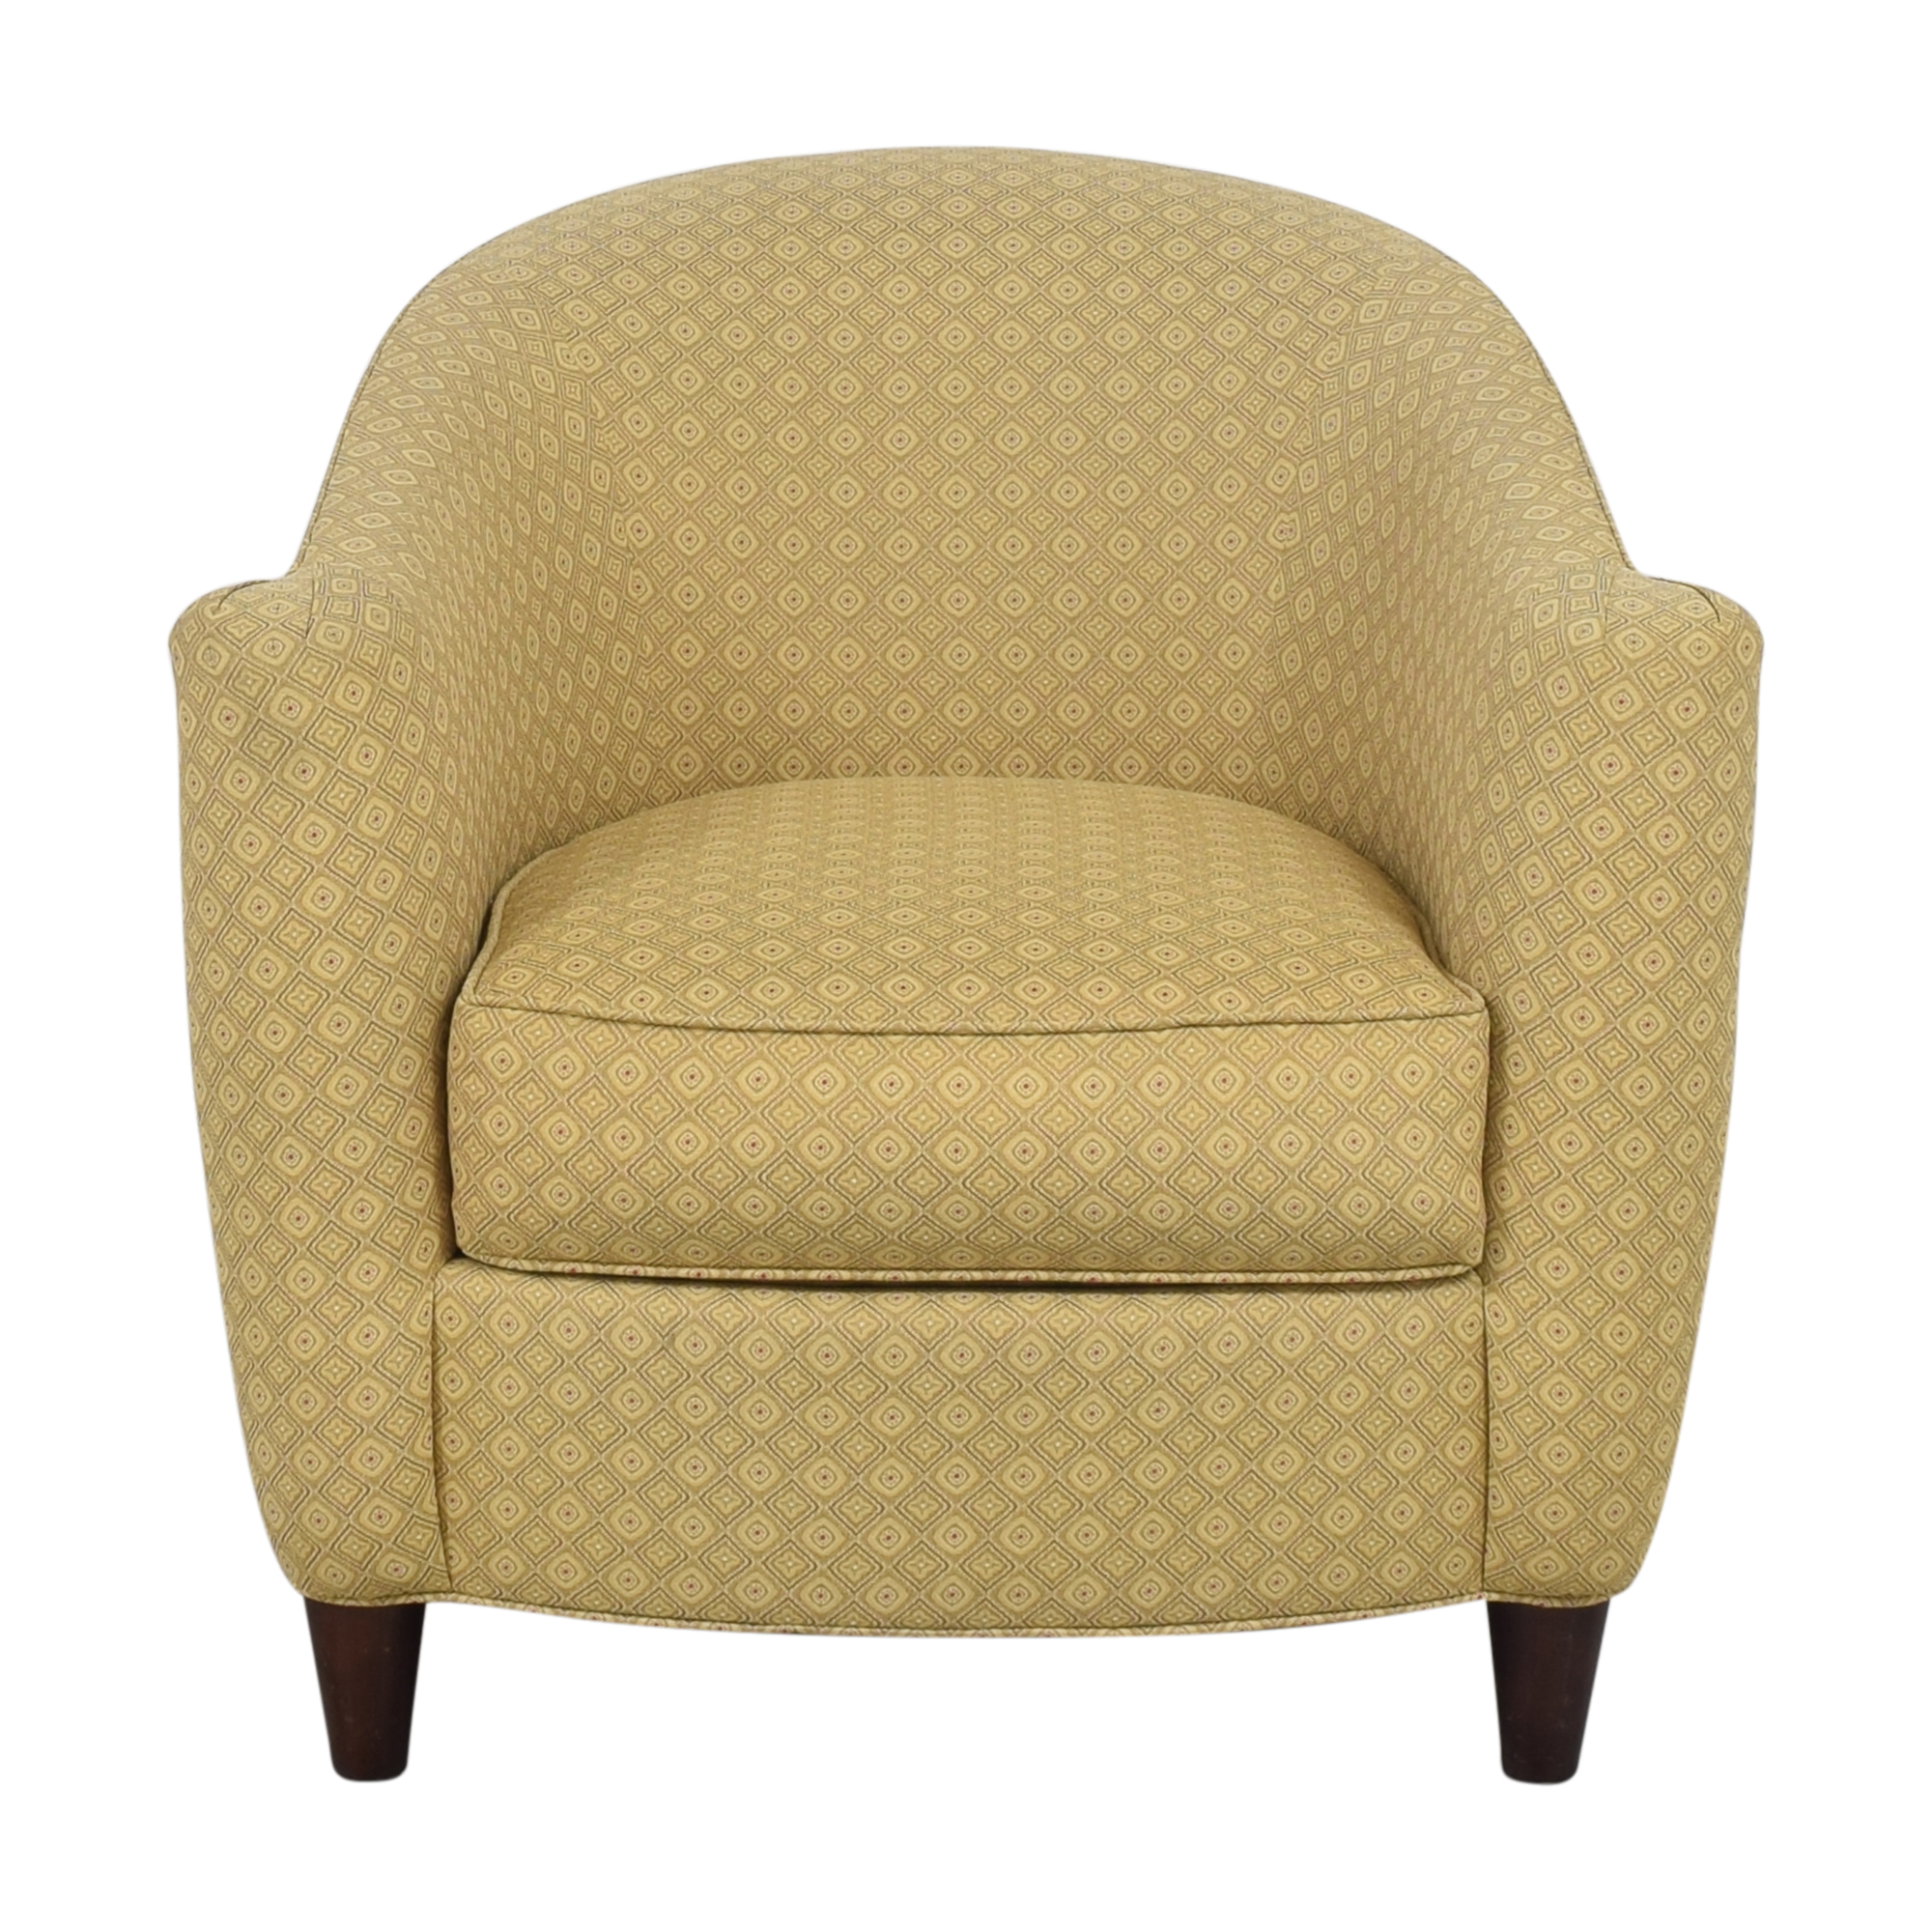 Kravet Kravet Wildwood Chair pa